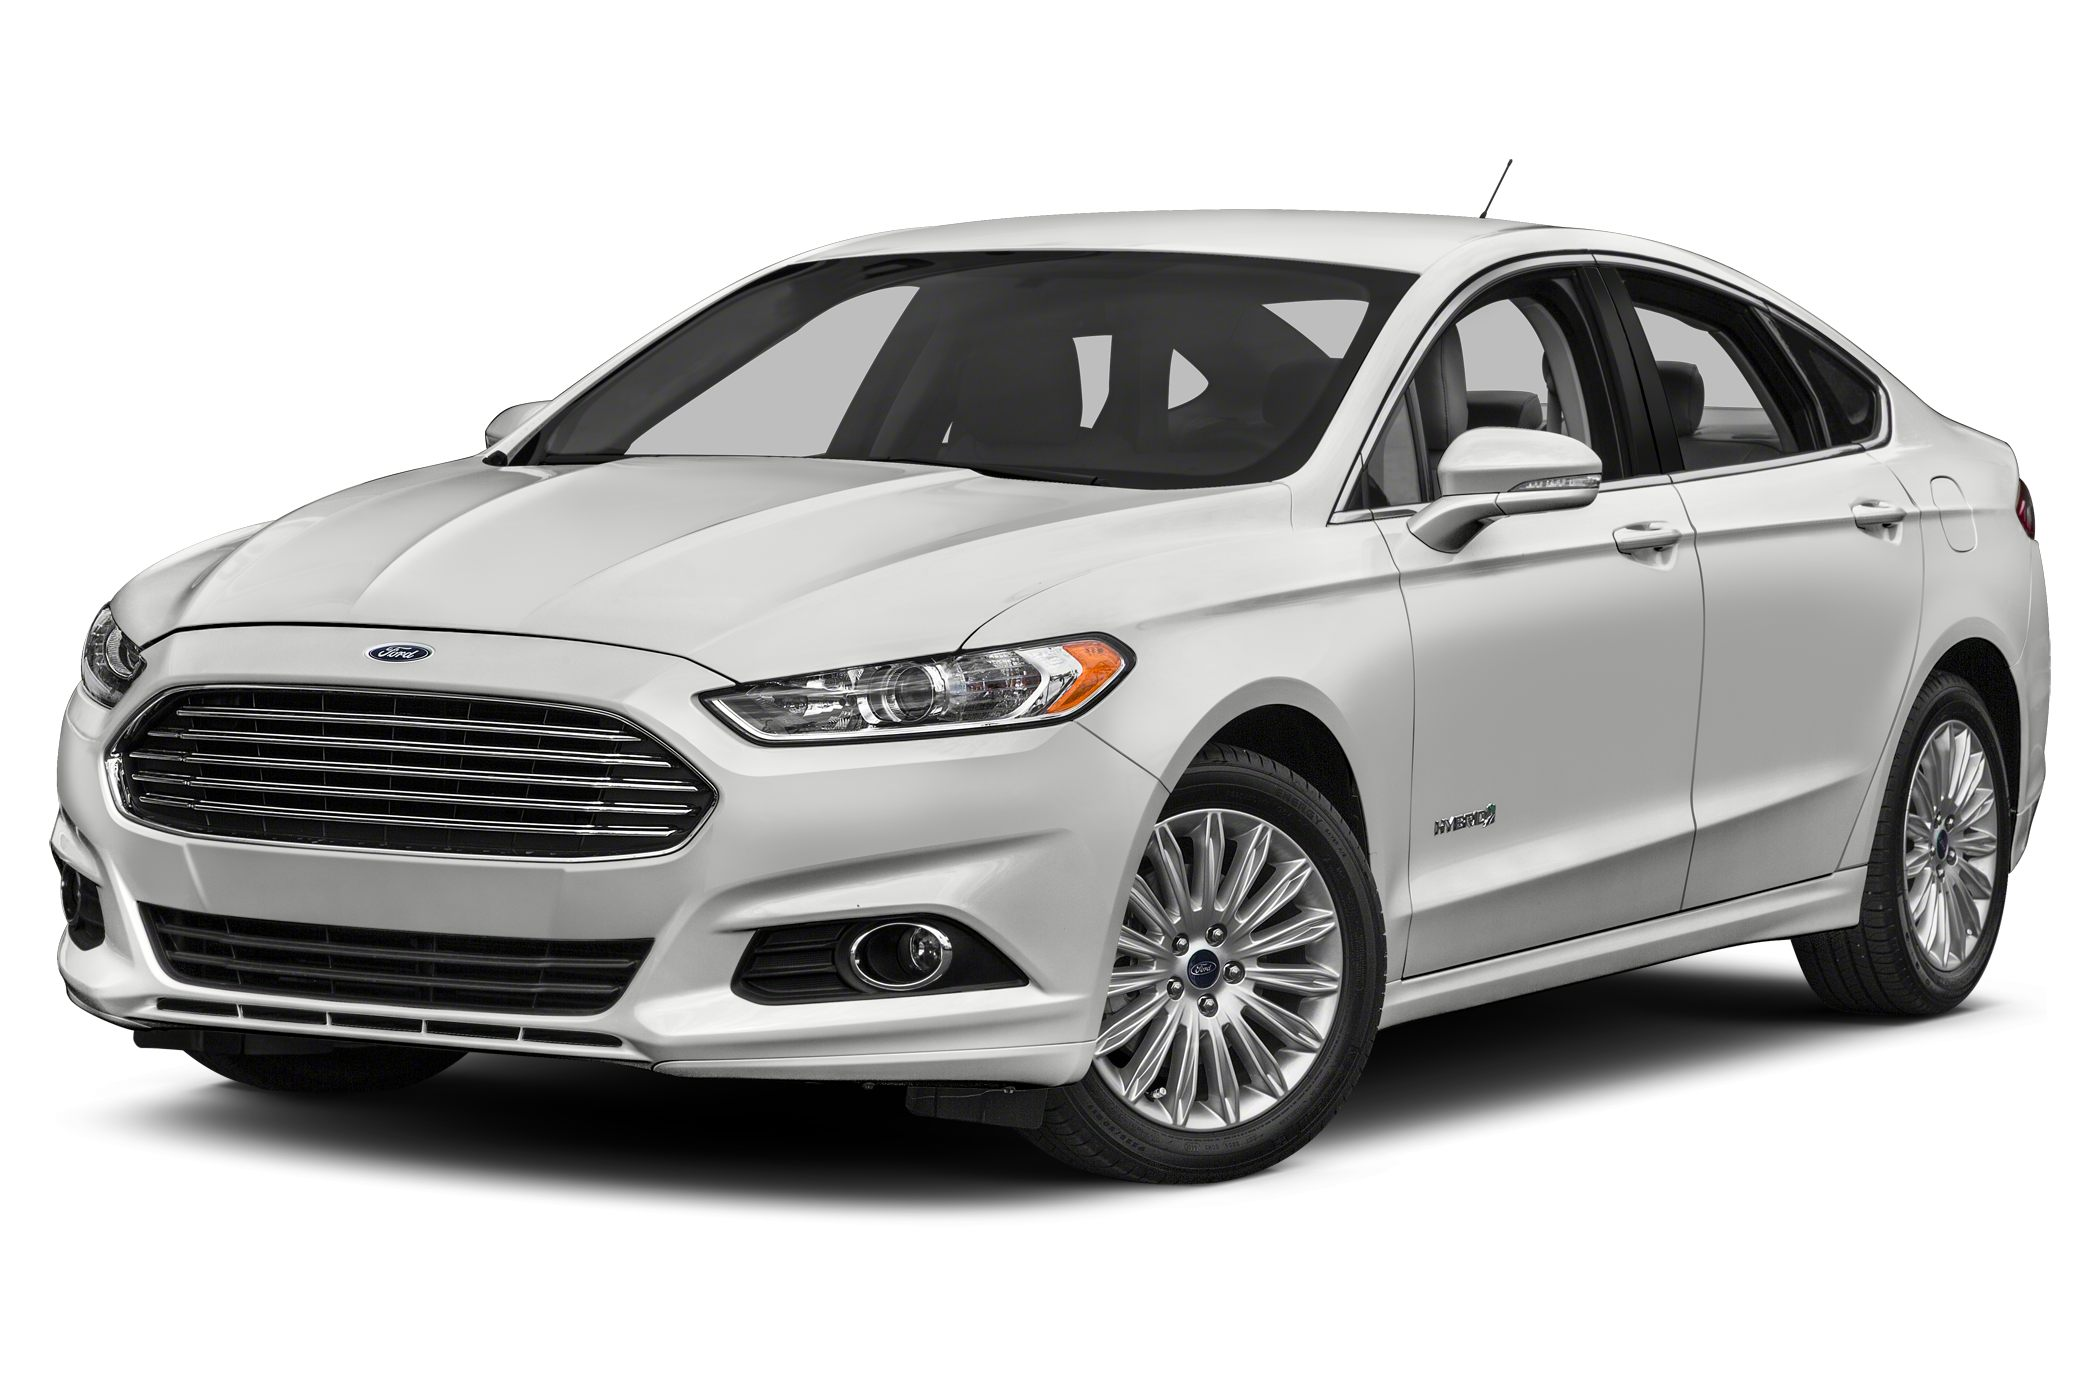 Used Cars Chattanooga Tn Best Of New and Used ford Fusion Hybrid In Chattanooga Tn